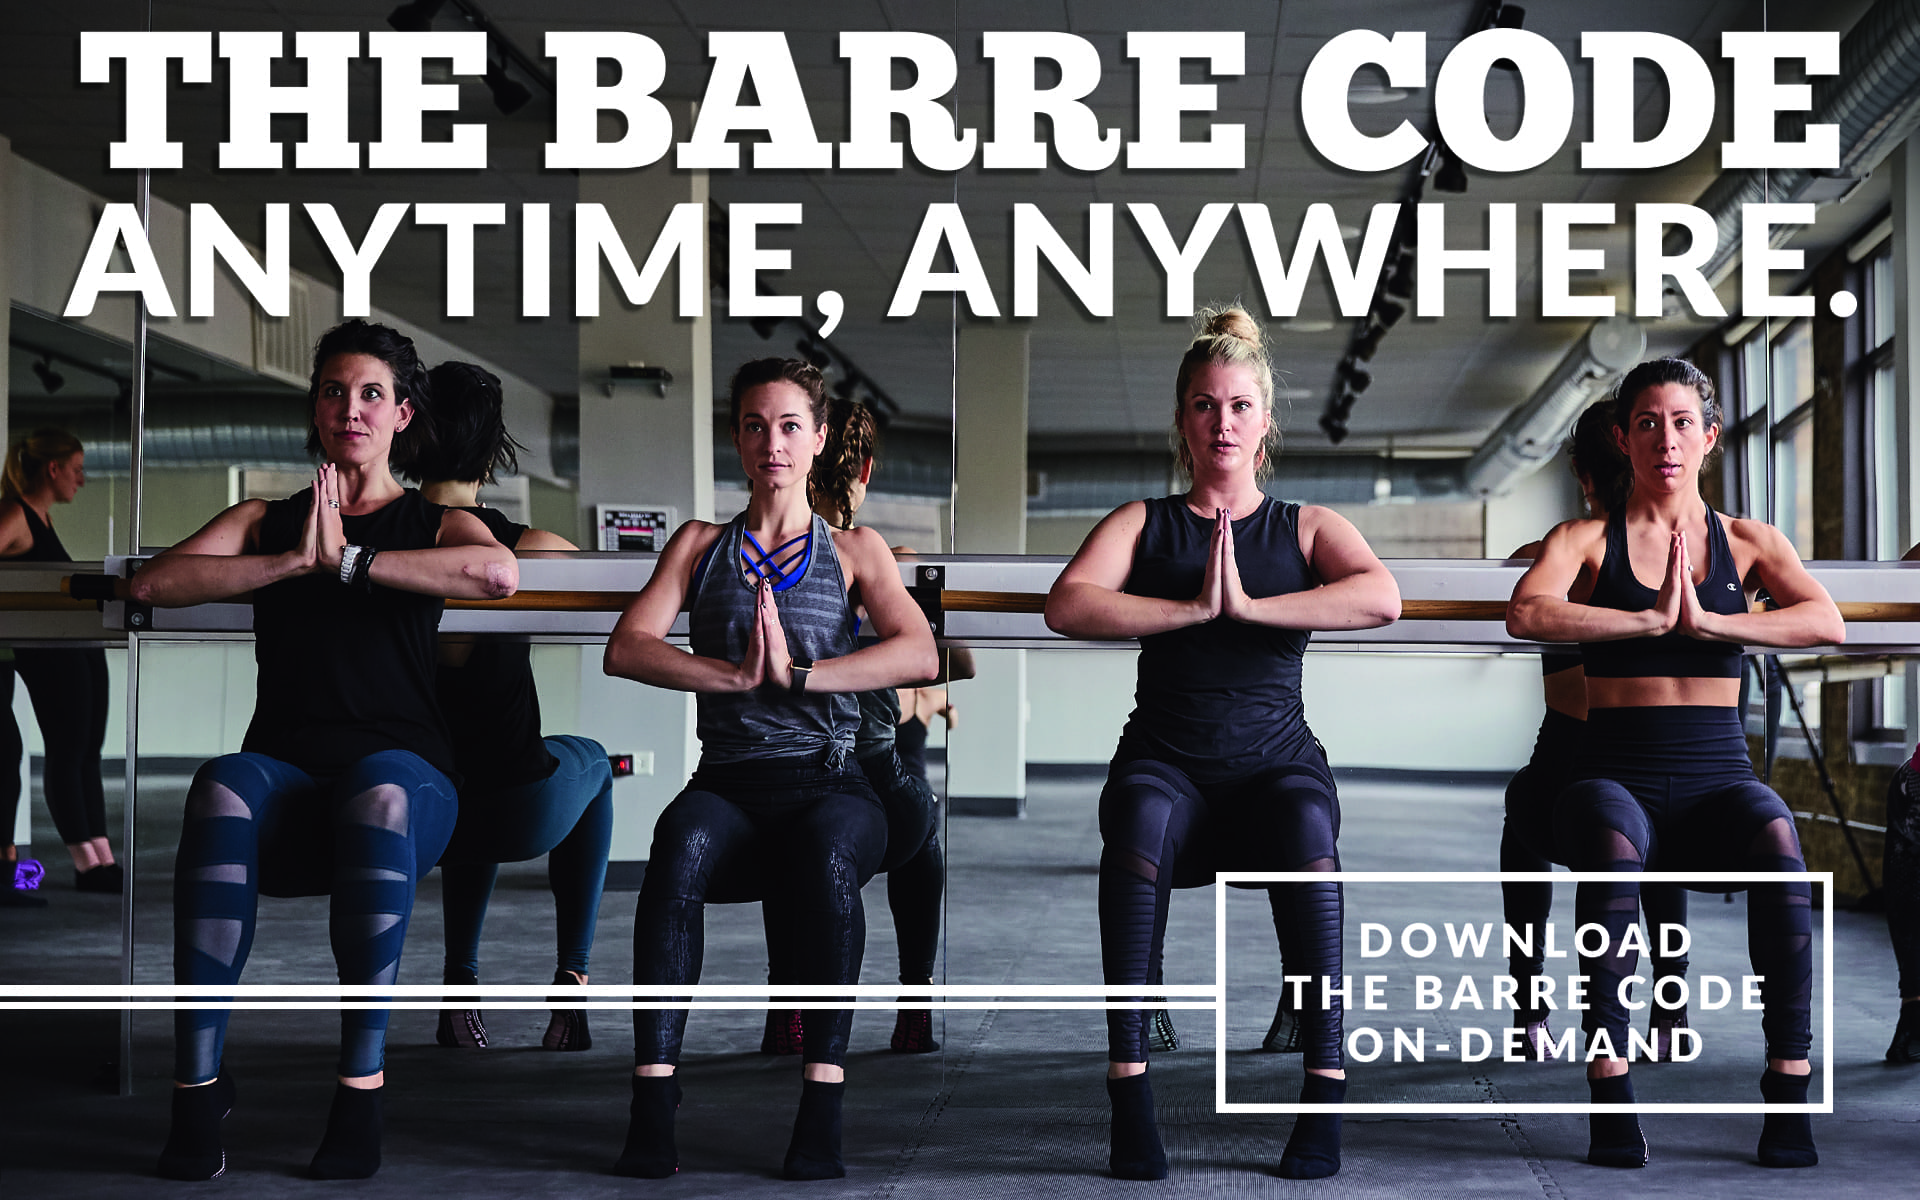 Total Body Barre Classes & Workouts | The Barre Code